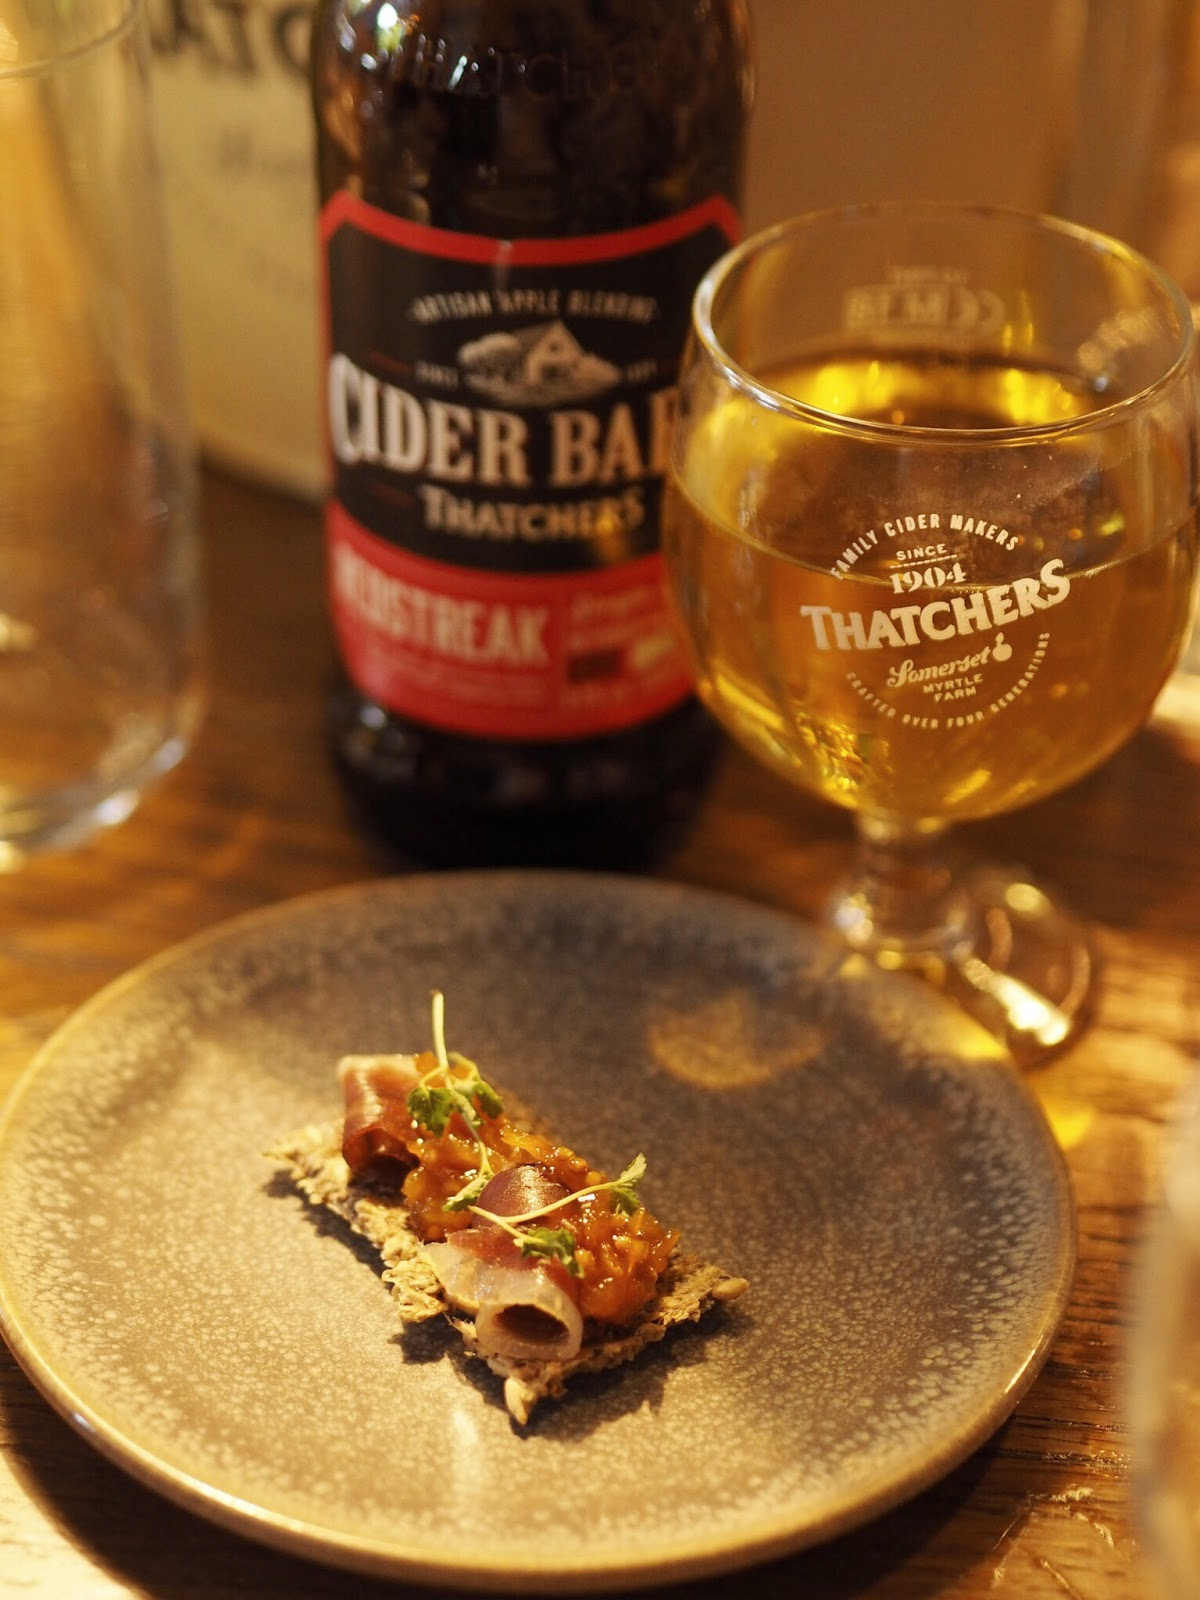 Thatchers Redstreak with Cured Duck Breast on Chia Cracker